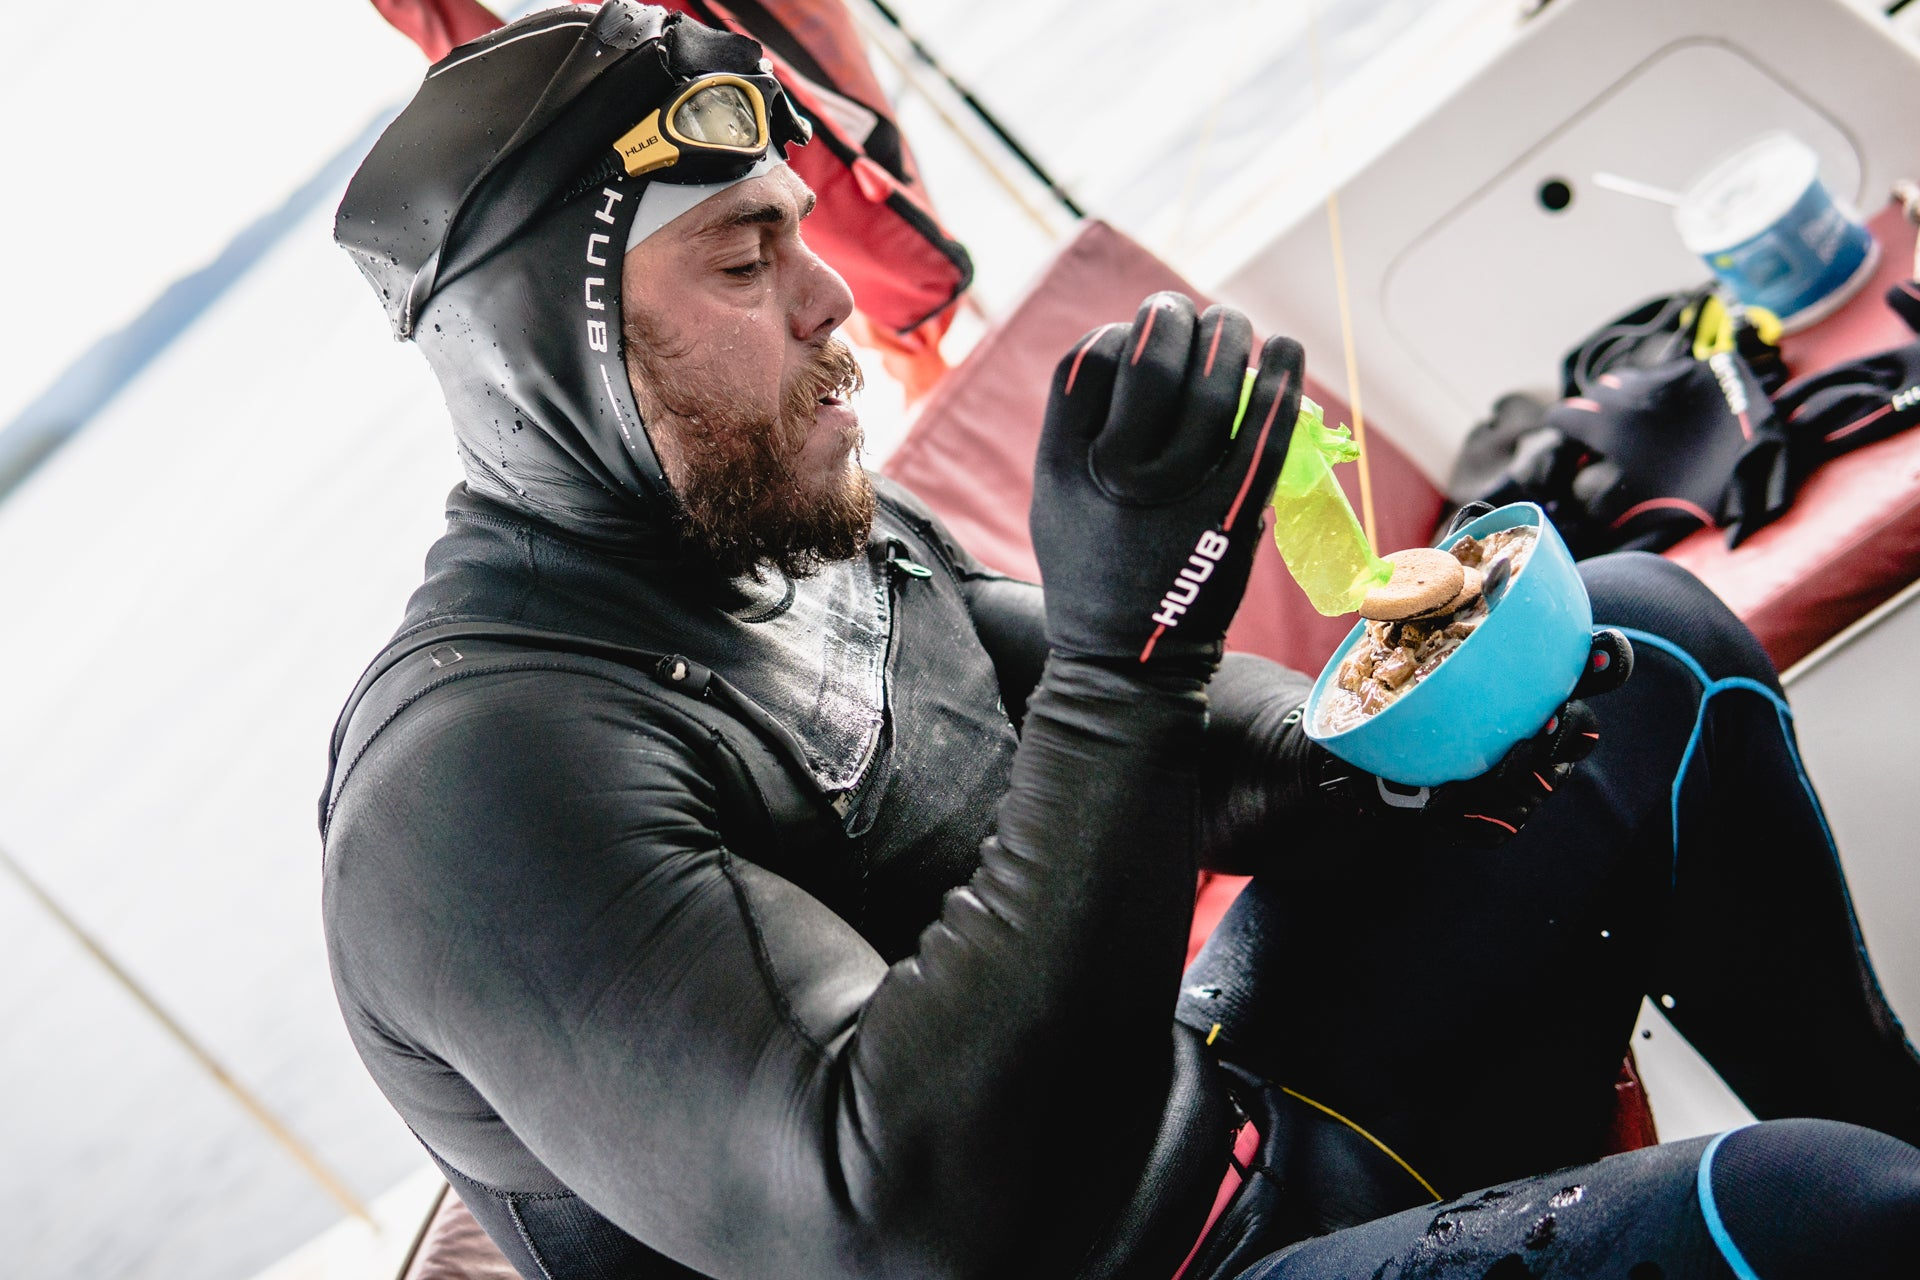 Ross Edgley eating. Image courtesy of Red Bull Content Pool